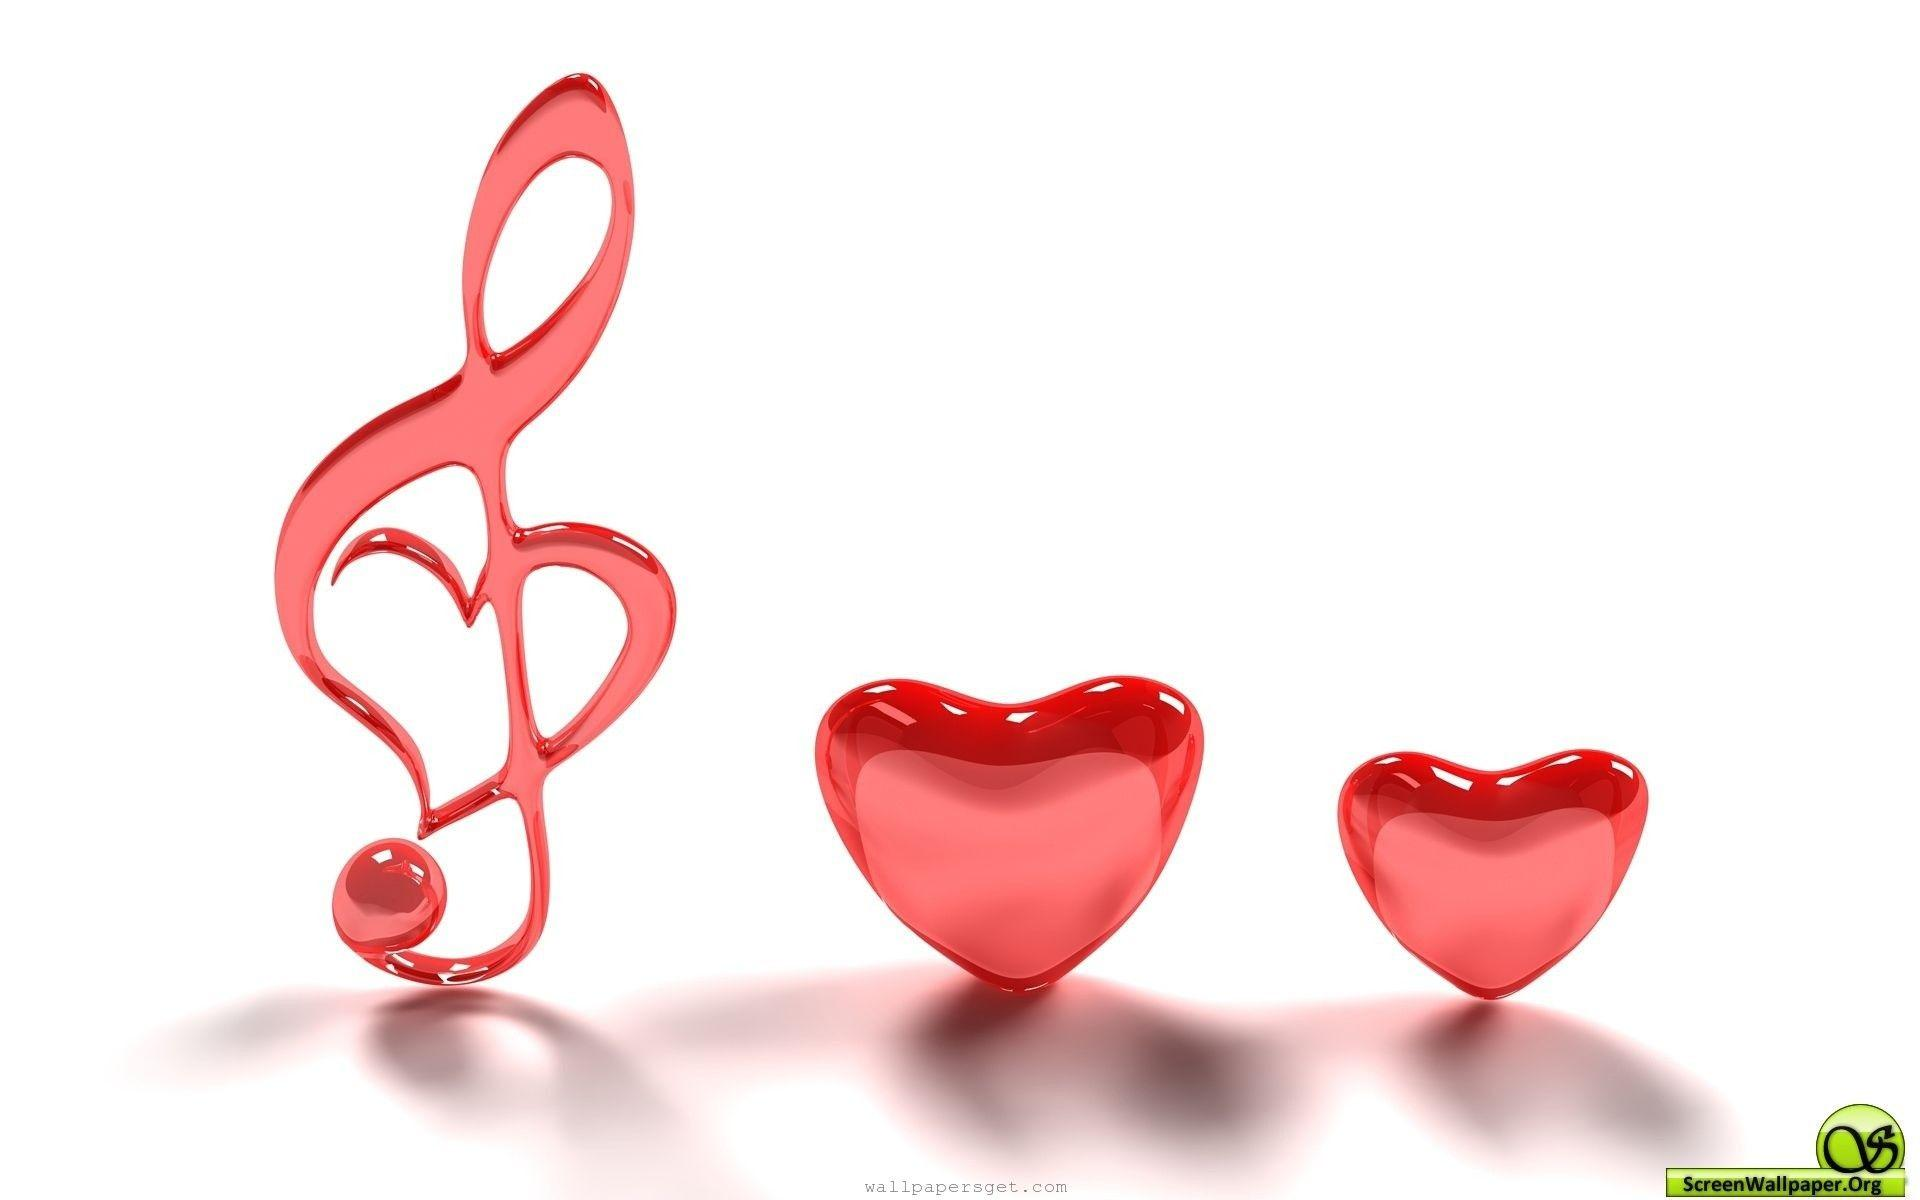 Love You Wallpaper 3d : Love Wallpapers 3D - Wallpaper cave